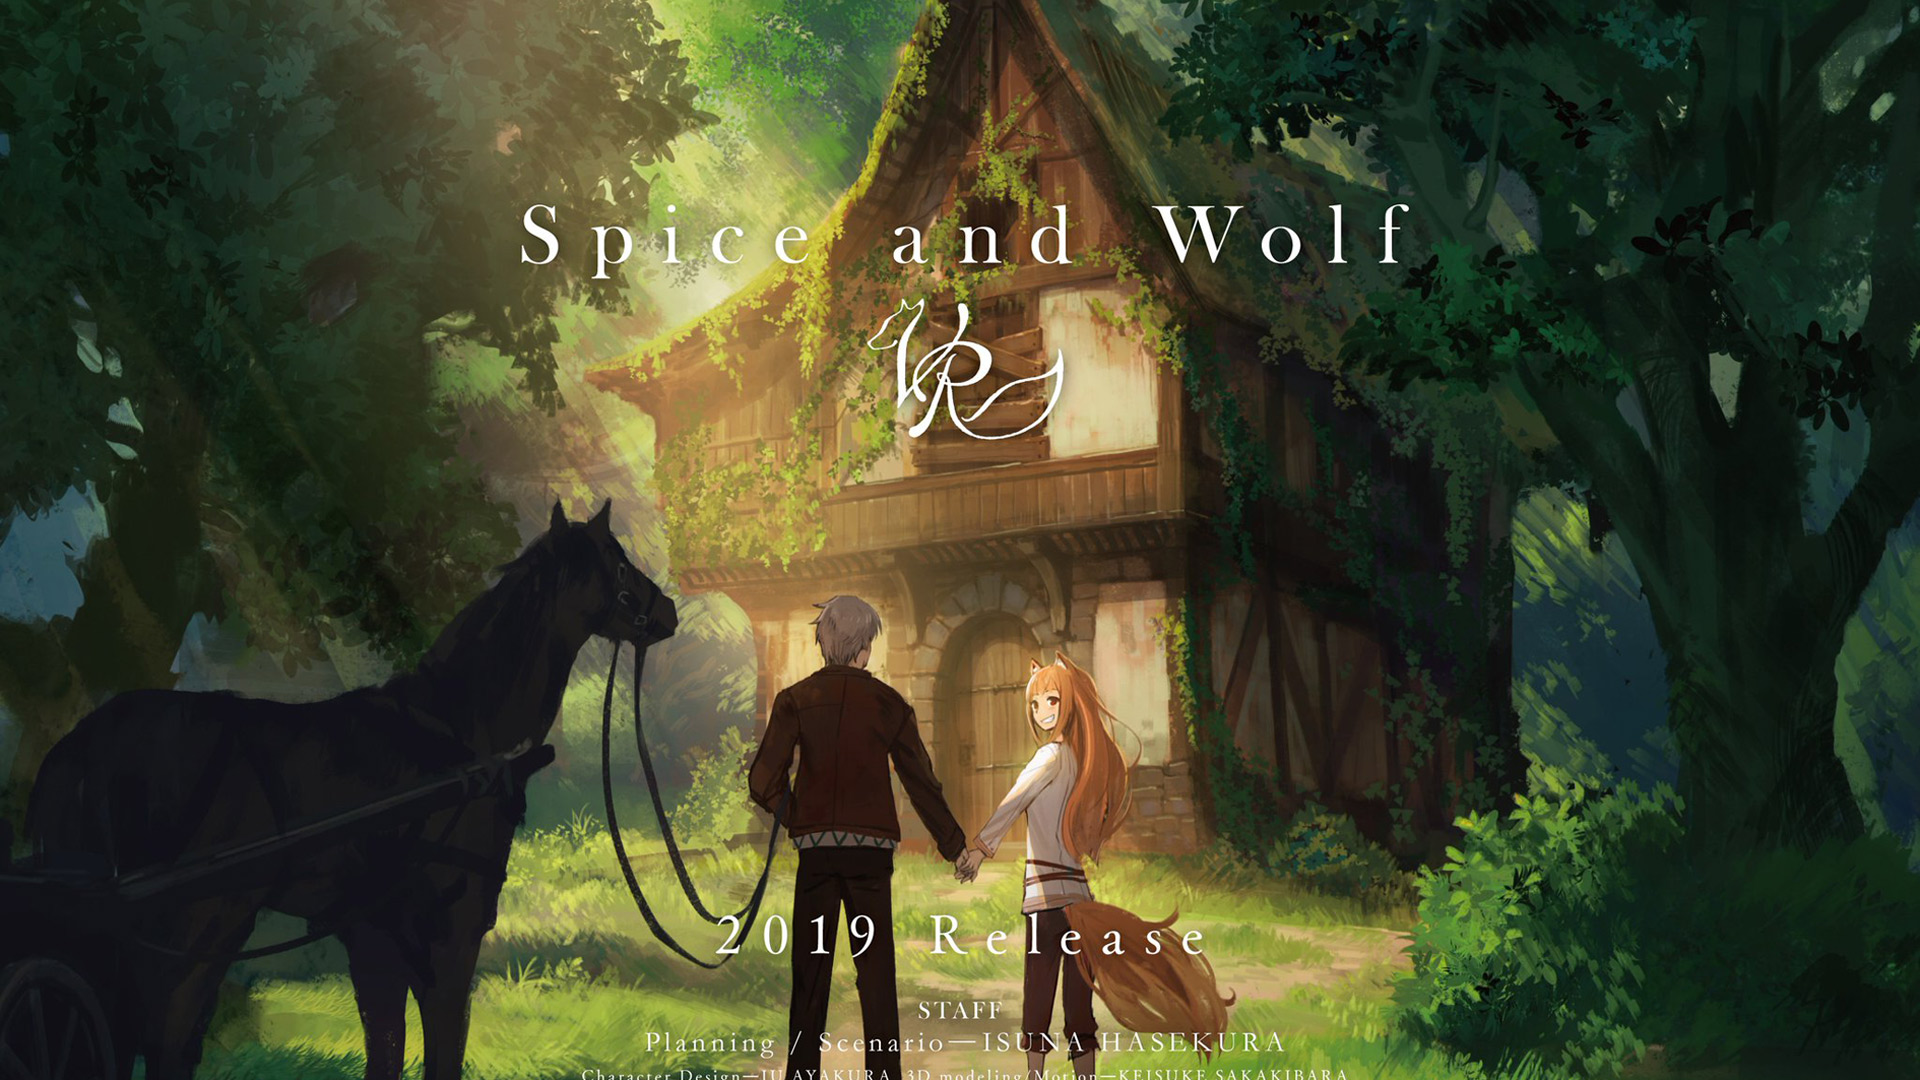 Spice Wolf VR Funding Campaign Reaches Goal In 2 Hours